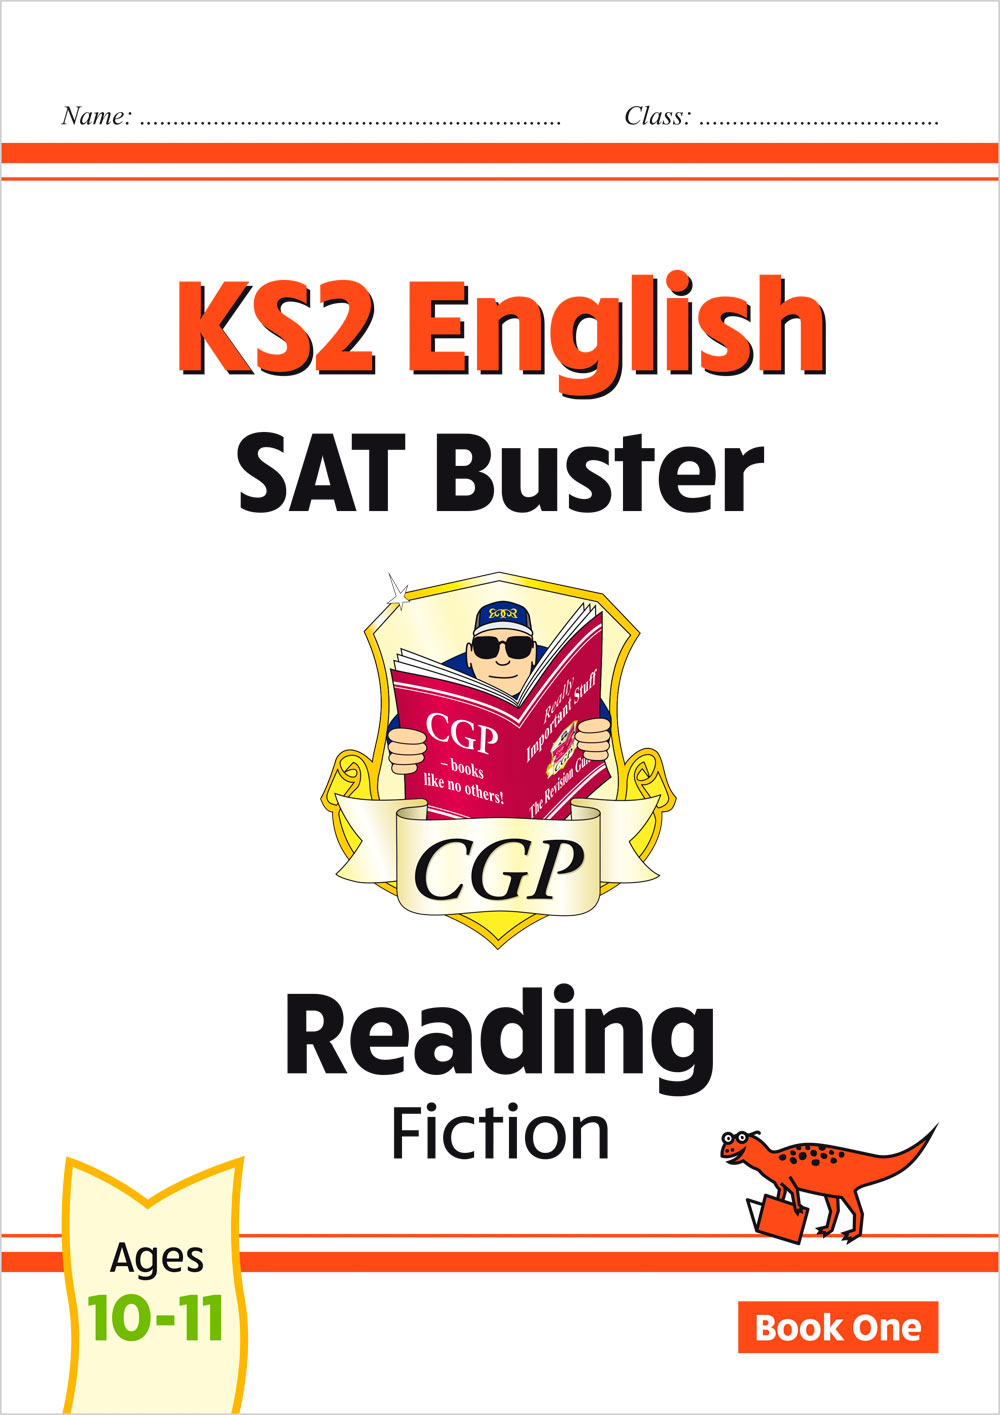 E6FRF22 - New KS2 English Reading SAT Buster: Fiction - Book 1 (for the 2020 tests)